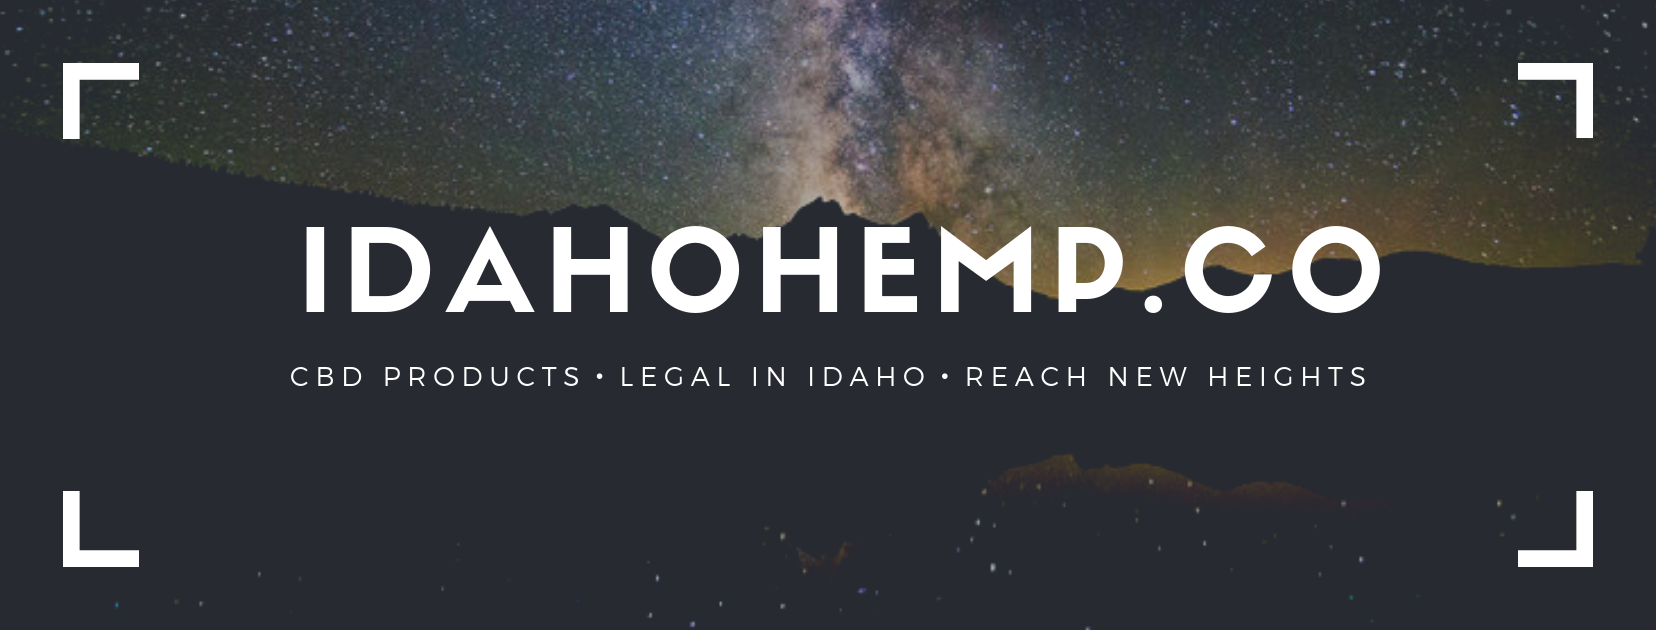 Idaho Hemp Co